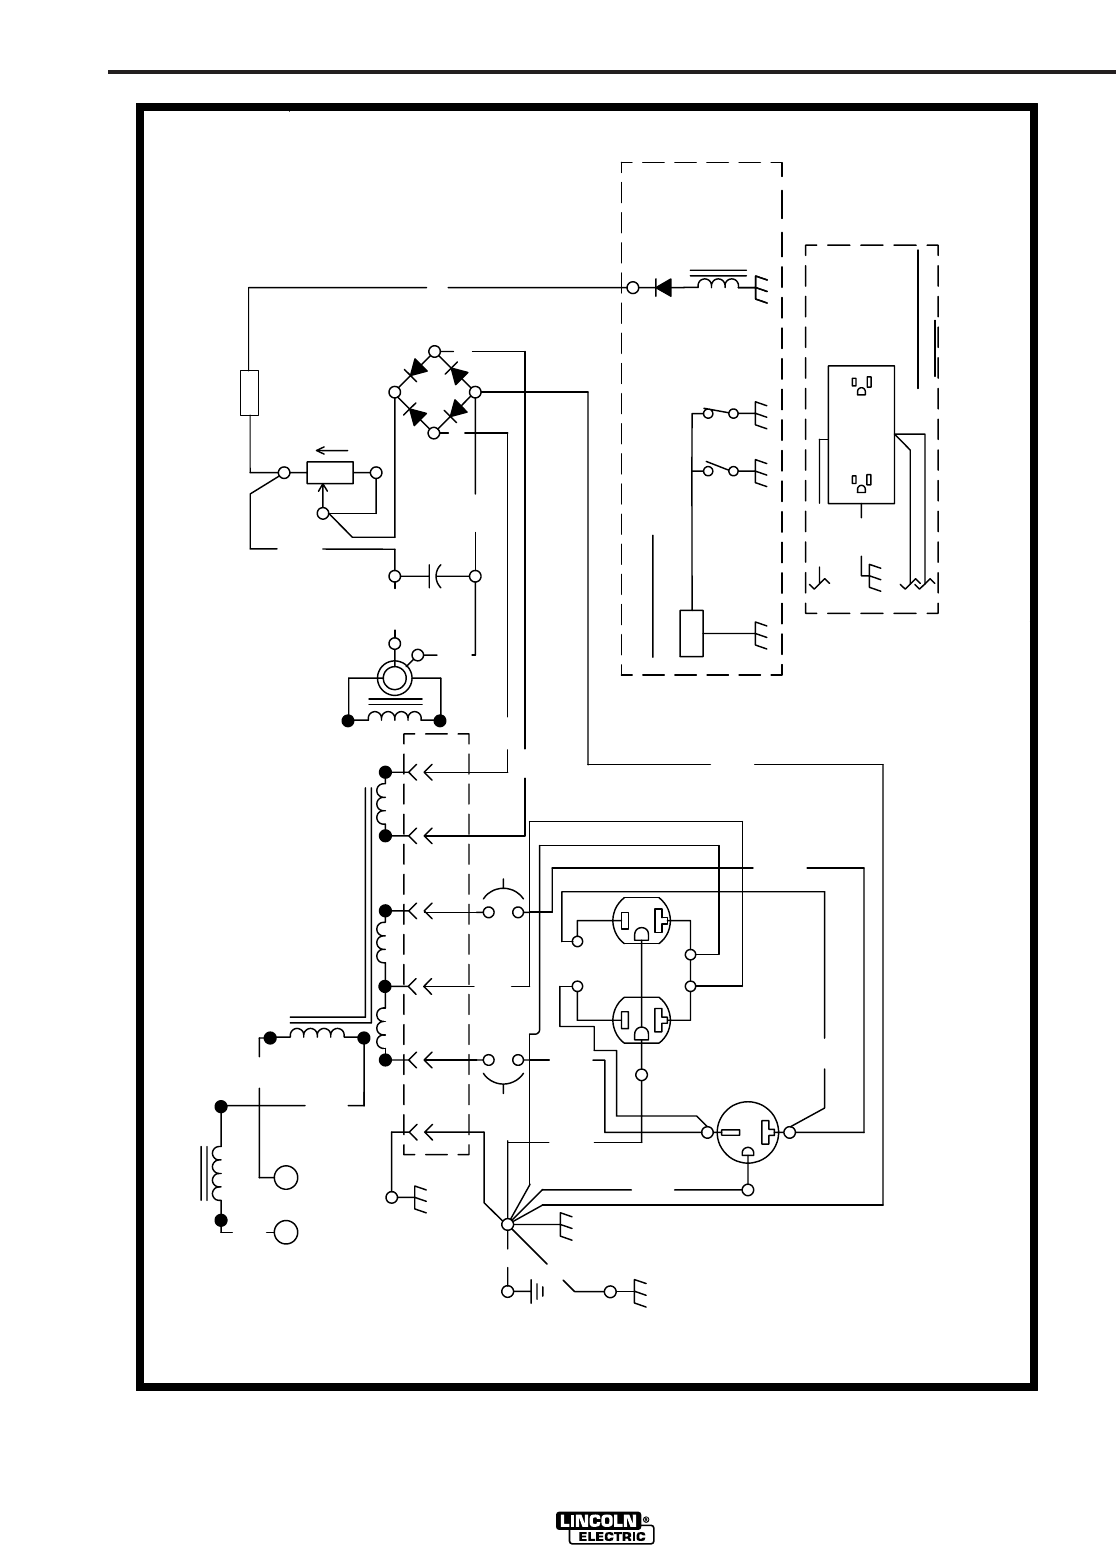 8dce7b58 fa39 4a70 8239 bcaa489a27c8 bg2e page 46 of lincoln power supply power arc 4000 user guide arc wiring diagram at panicattacktreatment.co